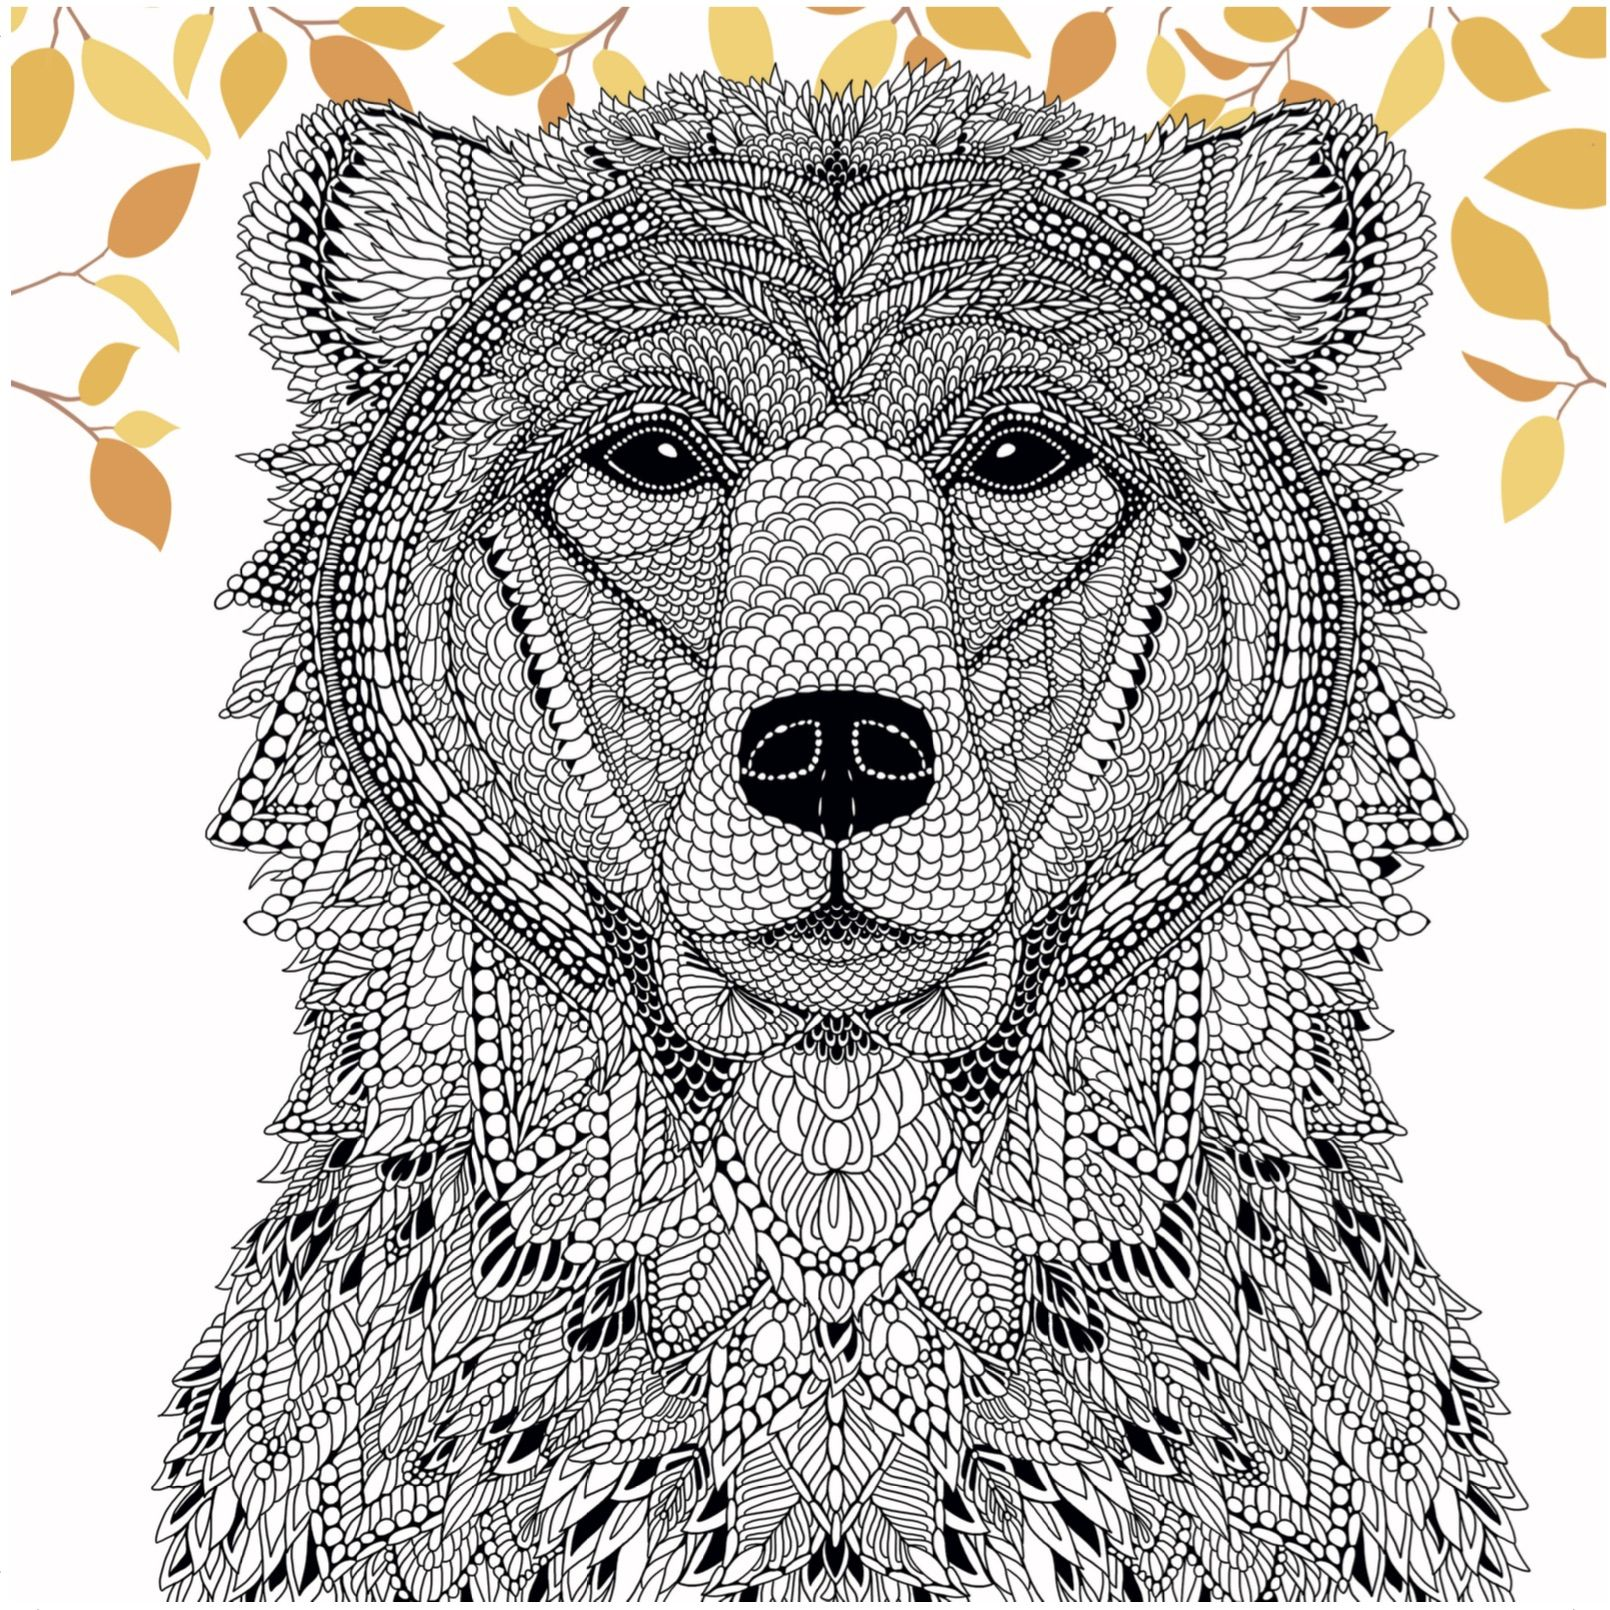 Color a Bear from The Menagerie